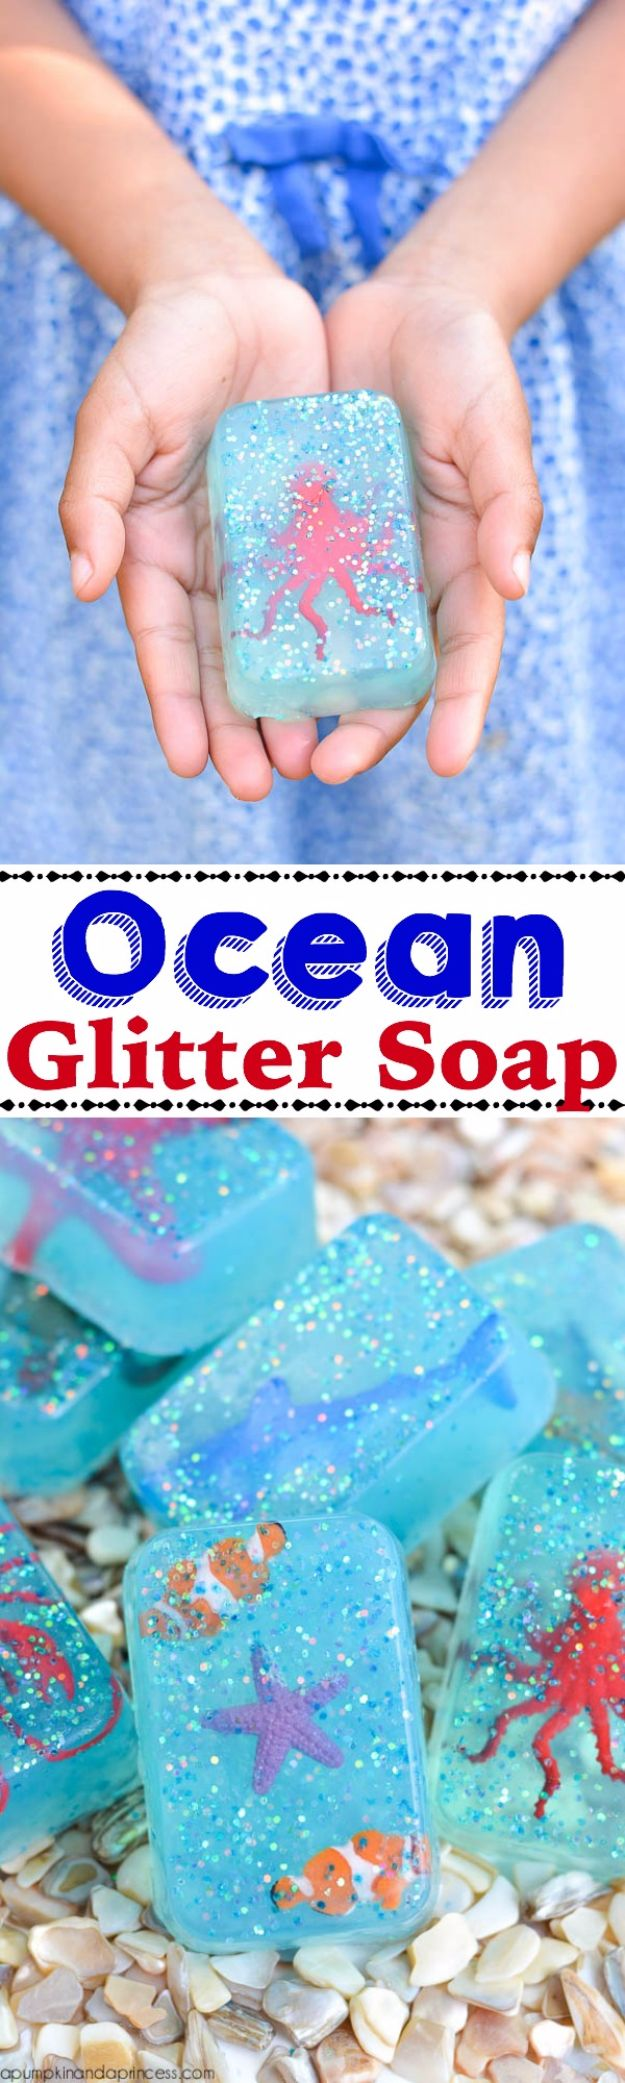 DIY Ideas WIth Glitter - Ocean Glitter Soap - Easy Crafts and Projects for Decoration, Gifts, and Bedroom Decor - How To Make Ombre, Mod Podge and Glitter Mason Jar Gift Ideas For Teens - Easy Clothes and Makeup Crafts For Teenagers #diyideas #glitter #crafts